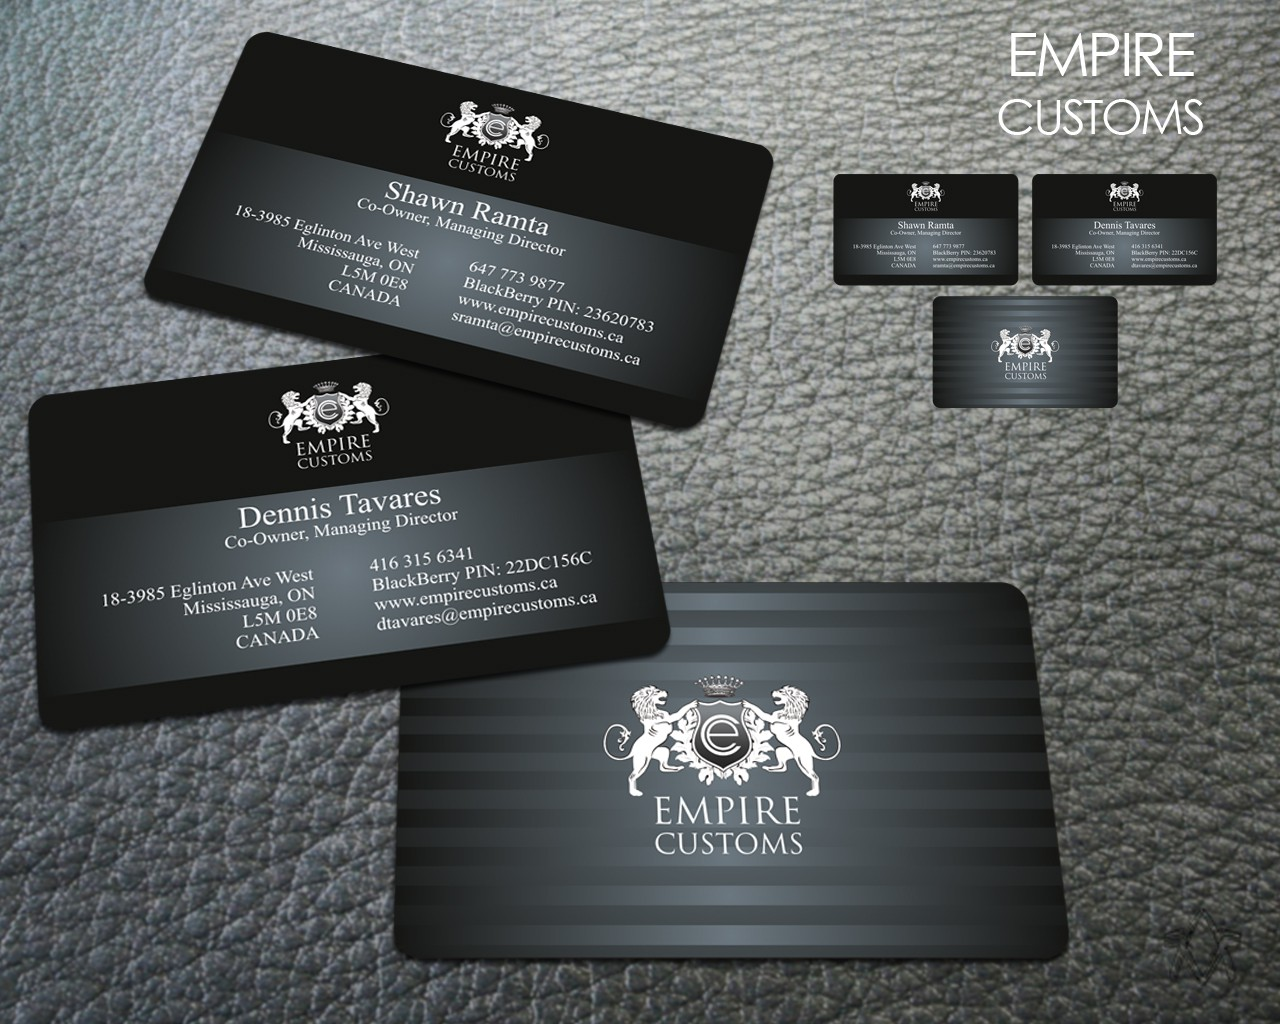 New stationery wanted for Empire Customs